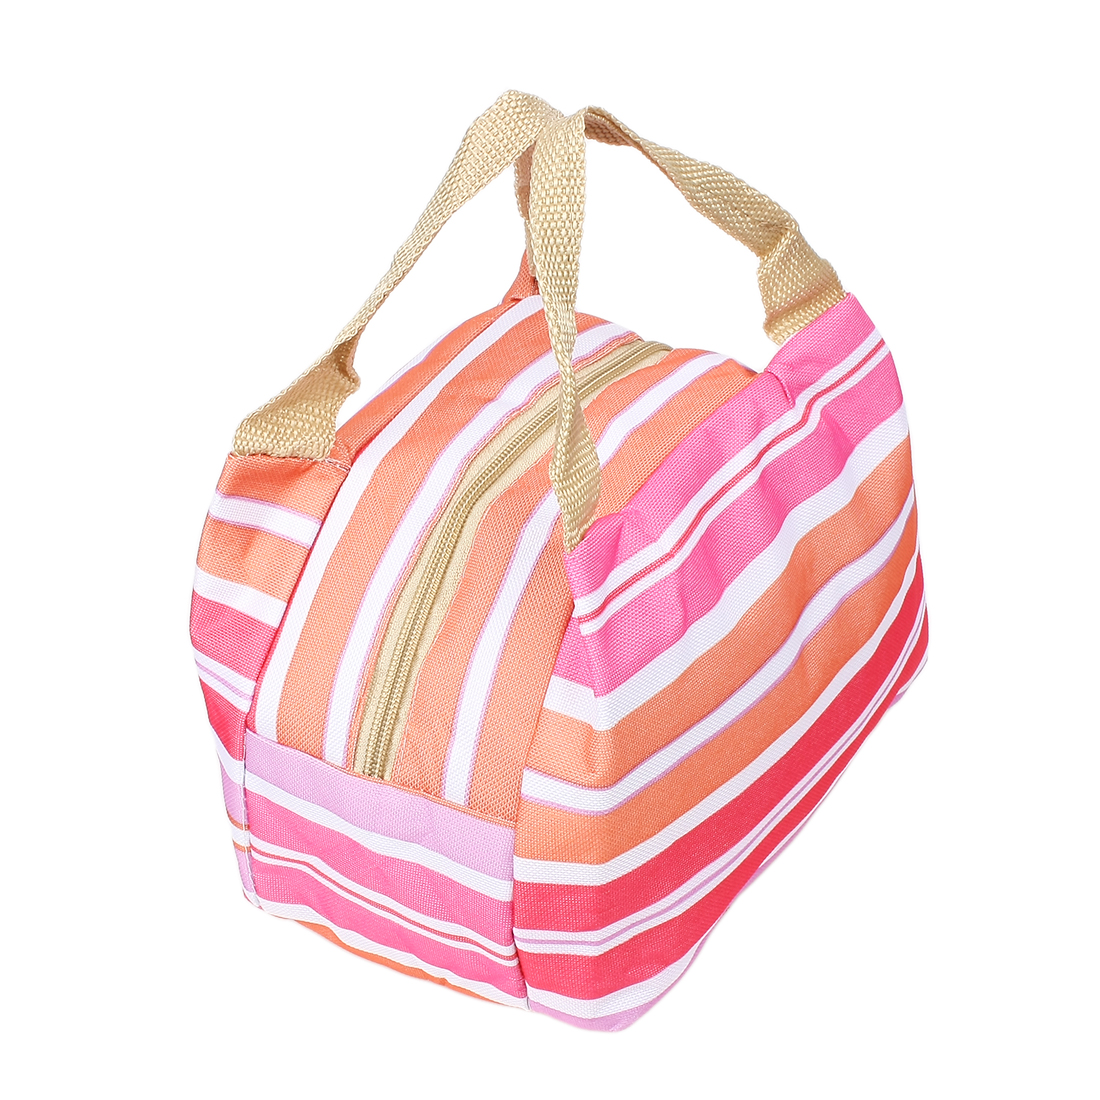 Canvas Assorted Color Picnic Lunch Drink Thermal Insulated Cooler Tote Bag